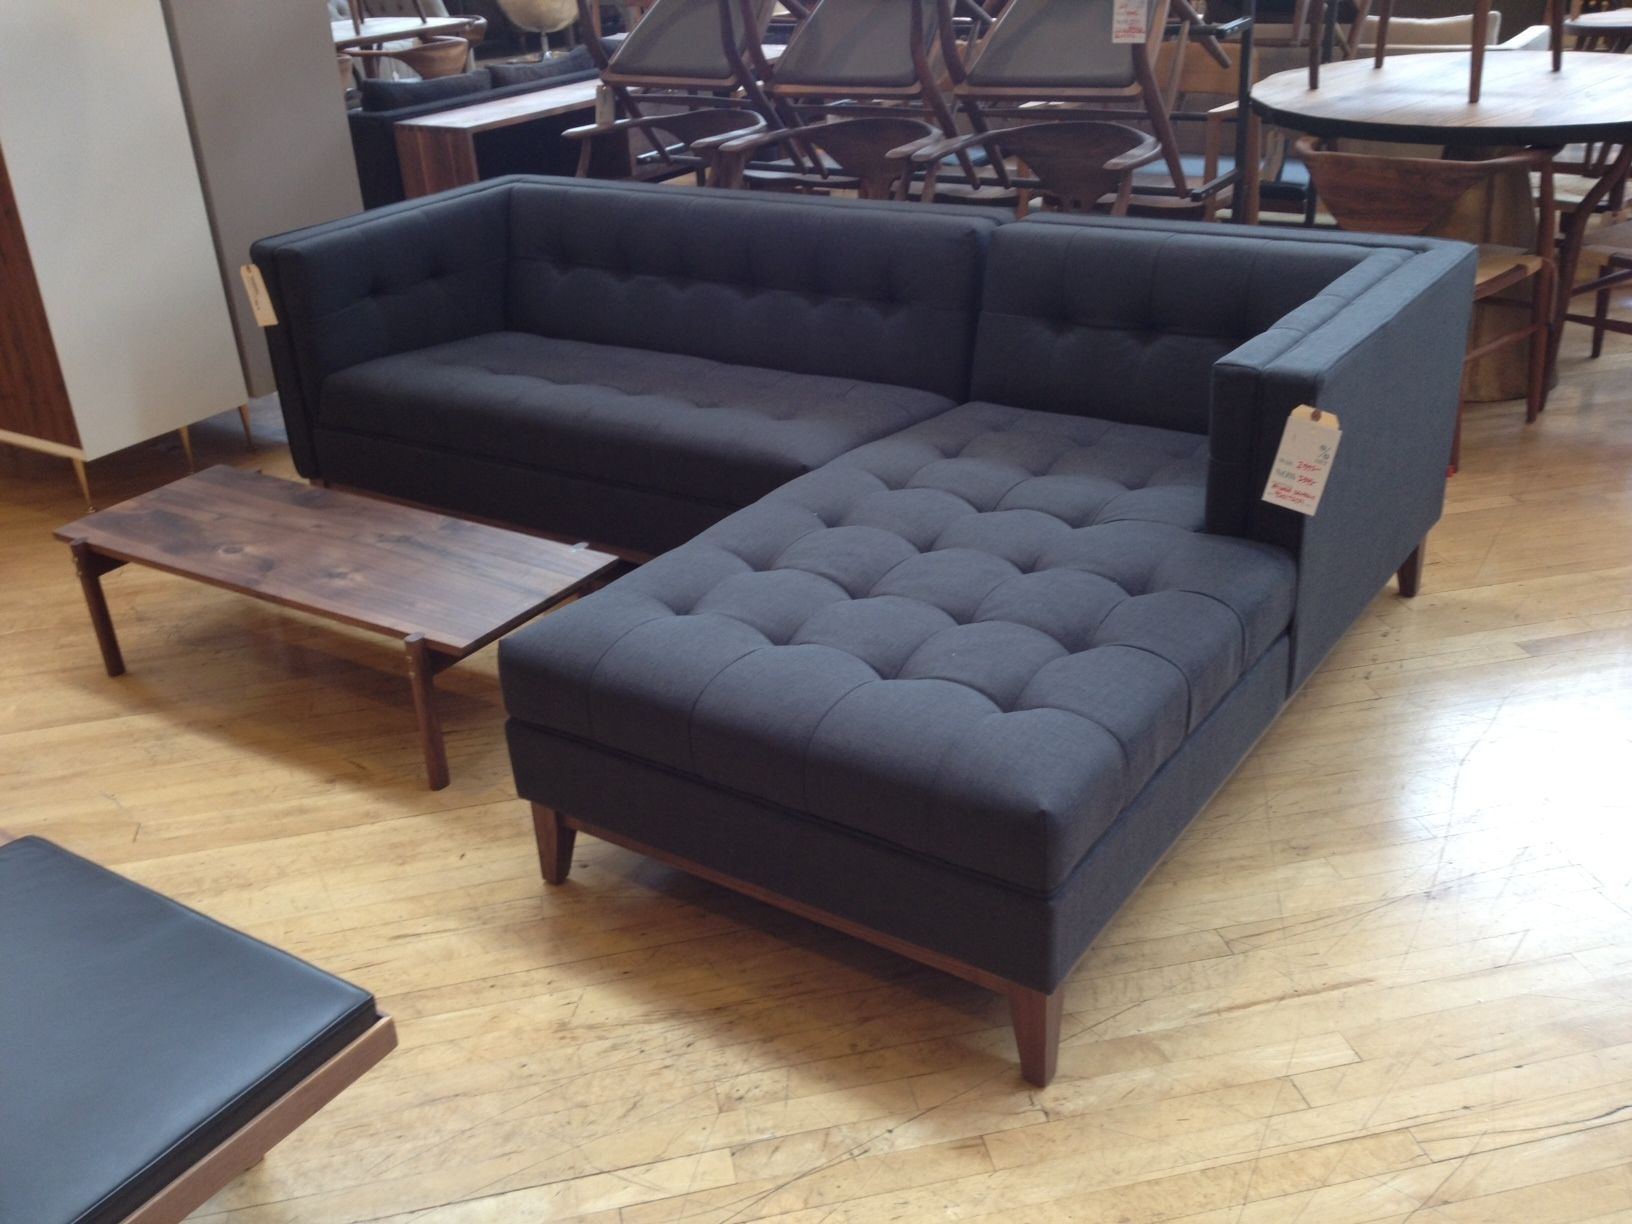 Room And Board Sectional Sofas   Tany.net Gallery